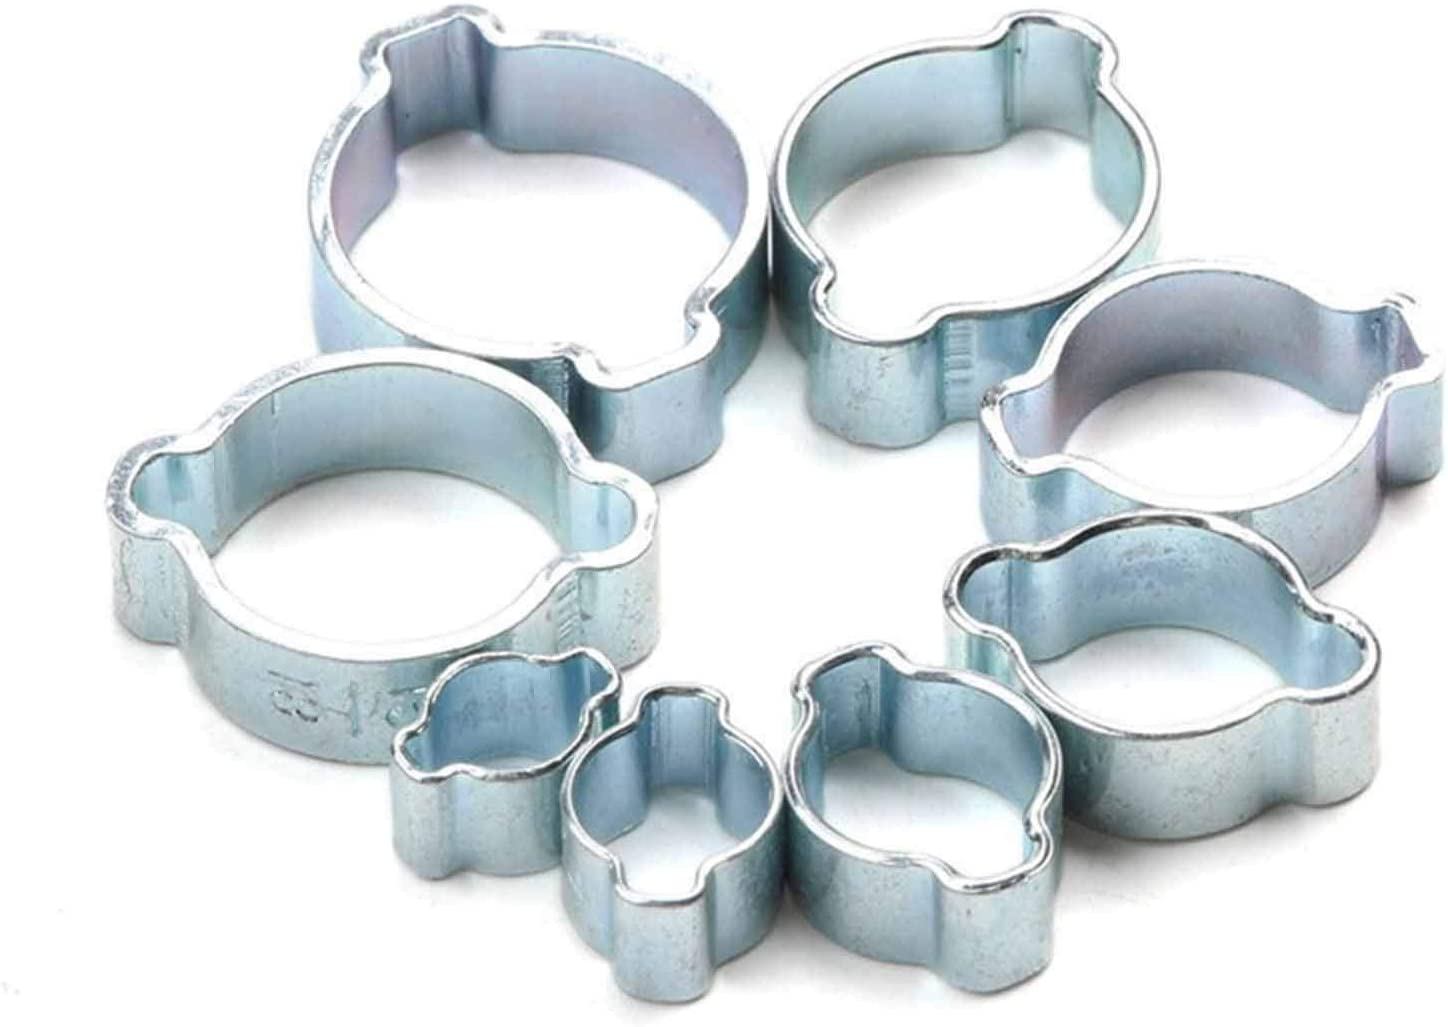 Size : 5 7mm Petrol Pipe Clips Clamps Clips Fuel Clamps Kit 10Pcs Hose Clamp Double Ears 5-20mm Worm Drive Fuel Water Hose for Silicone Or Rubber Hose Fuel